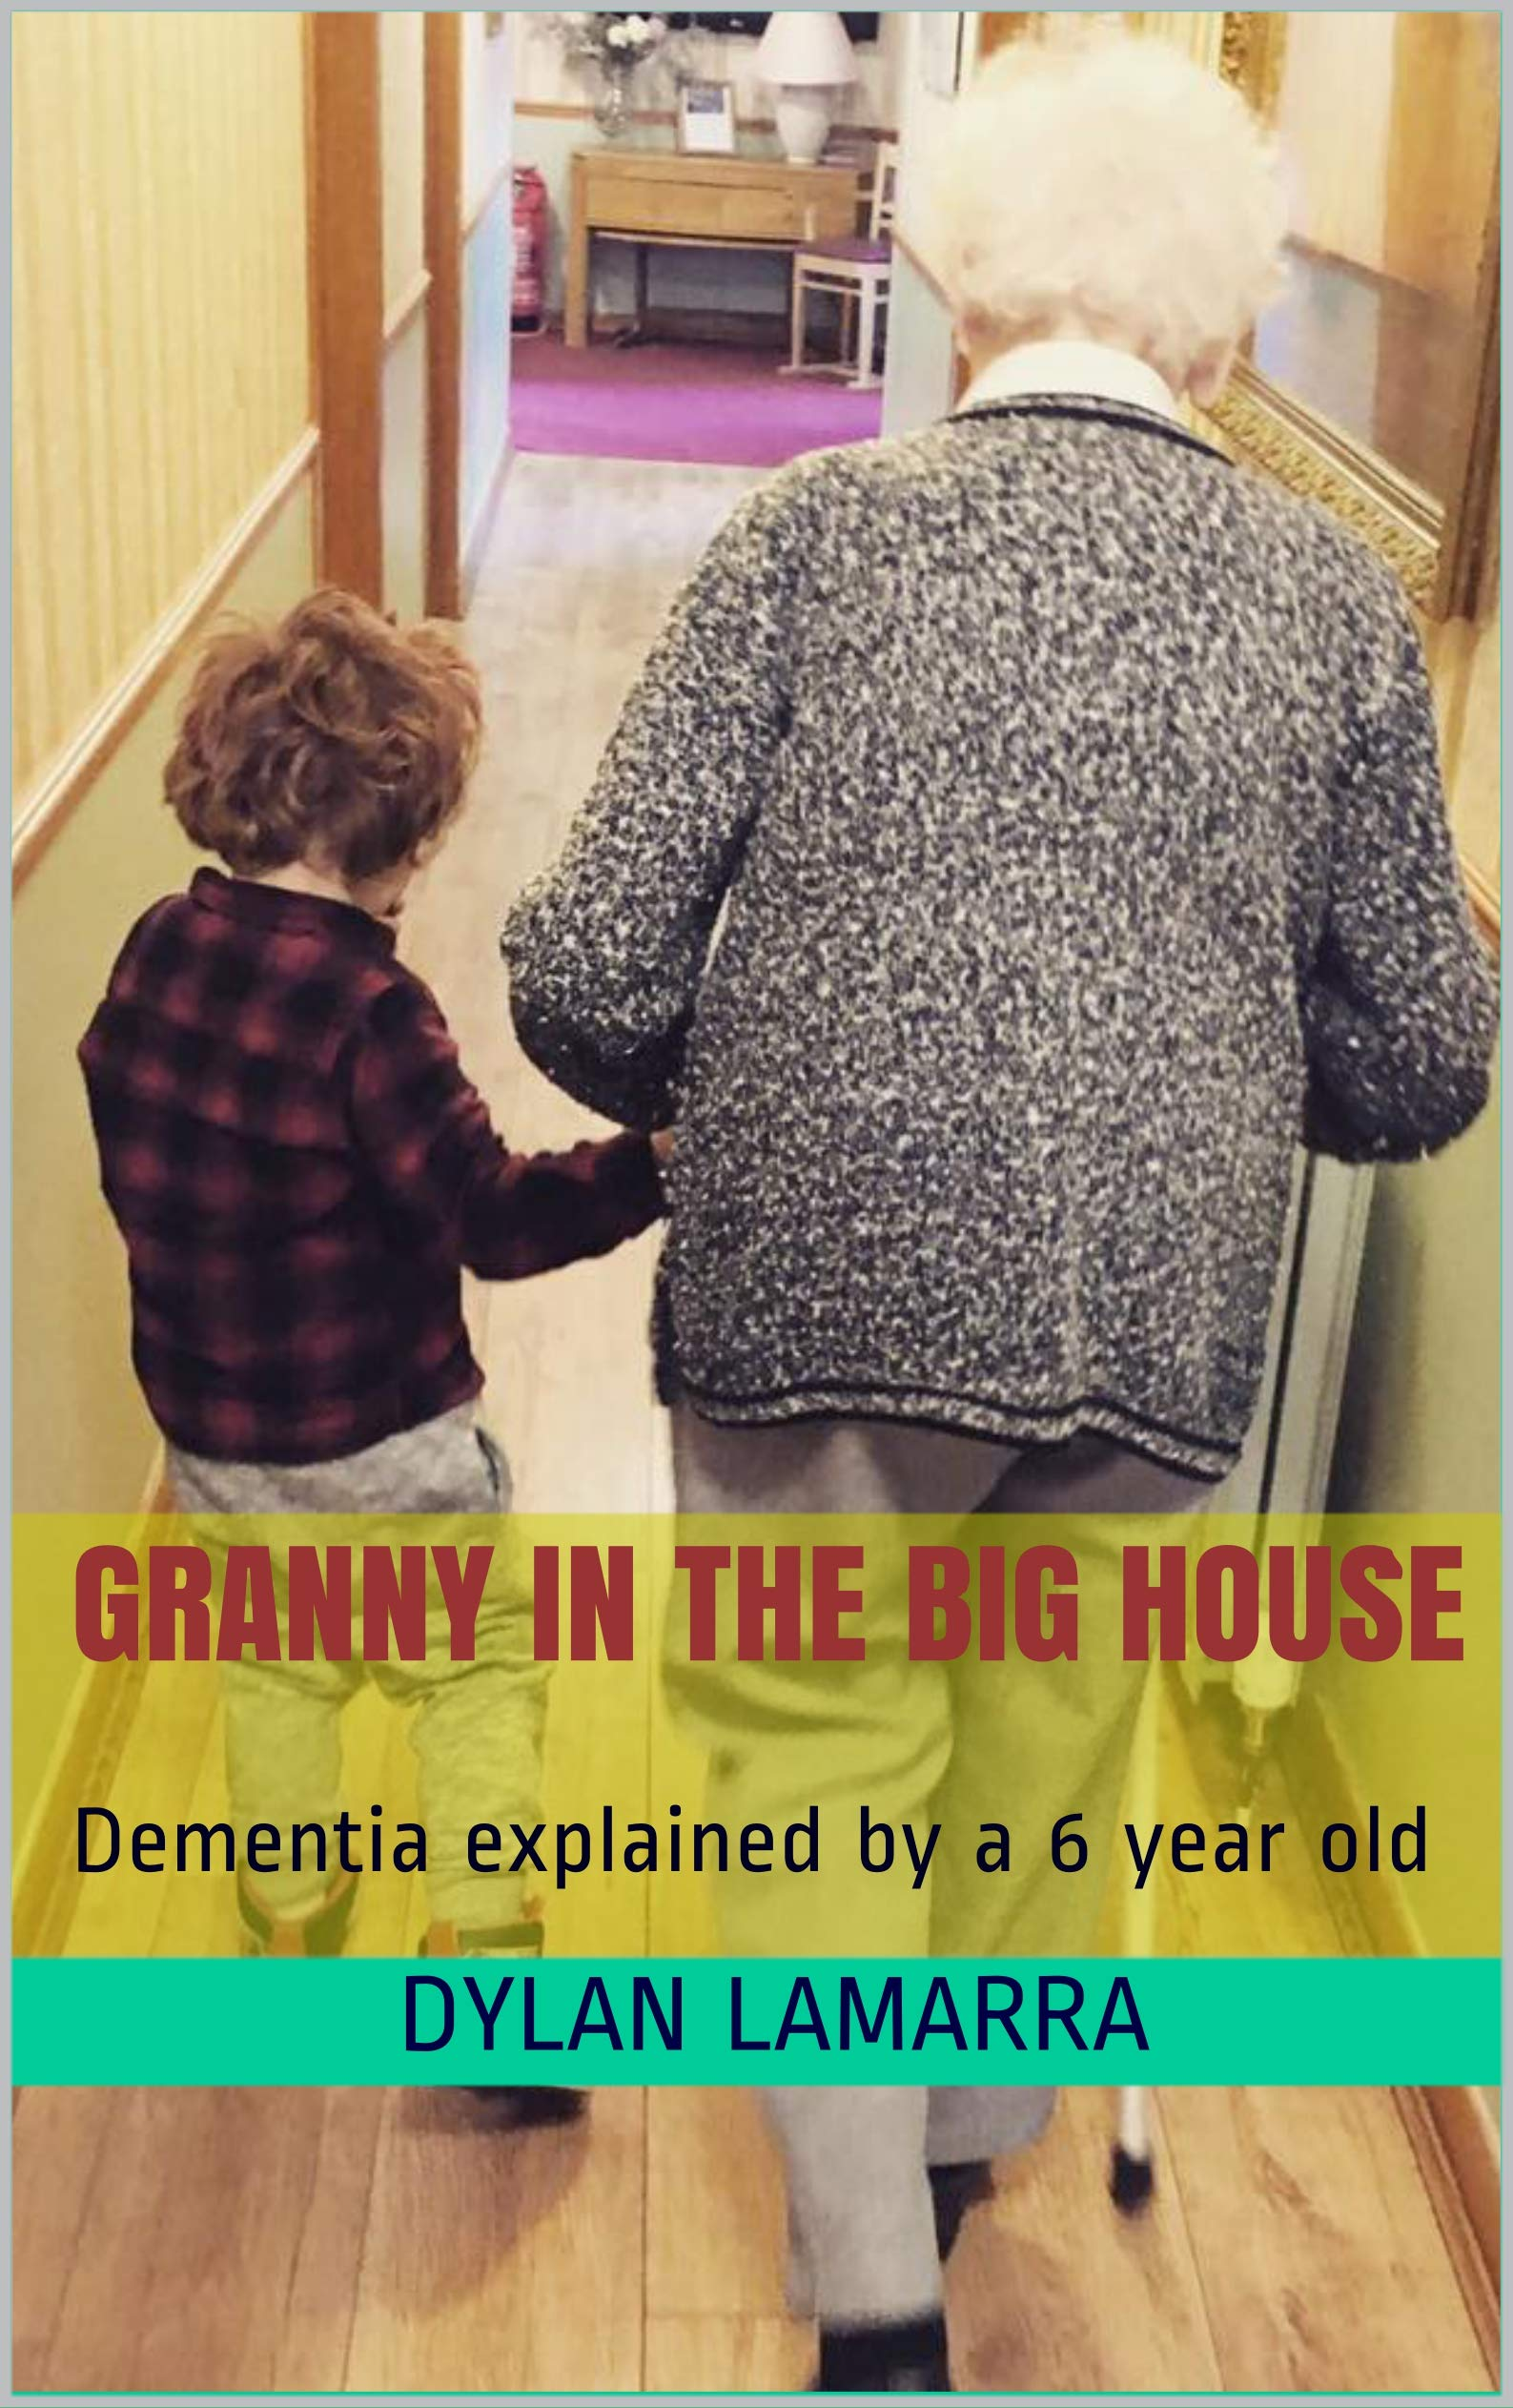 Granny In The Big House: Dementia explained by a 6 year old